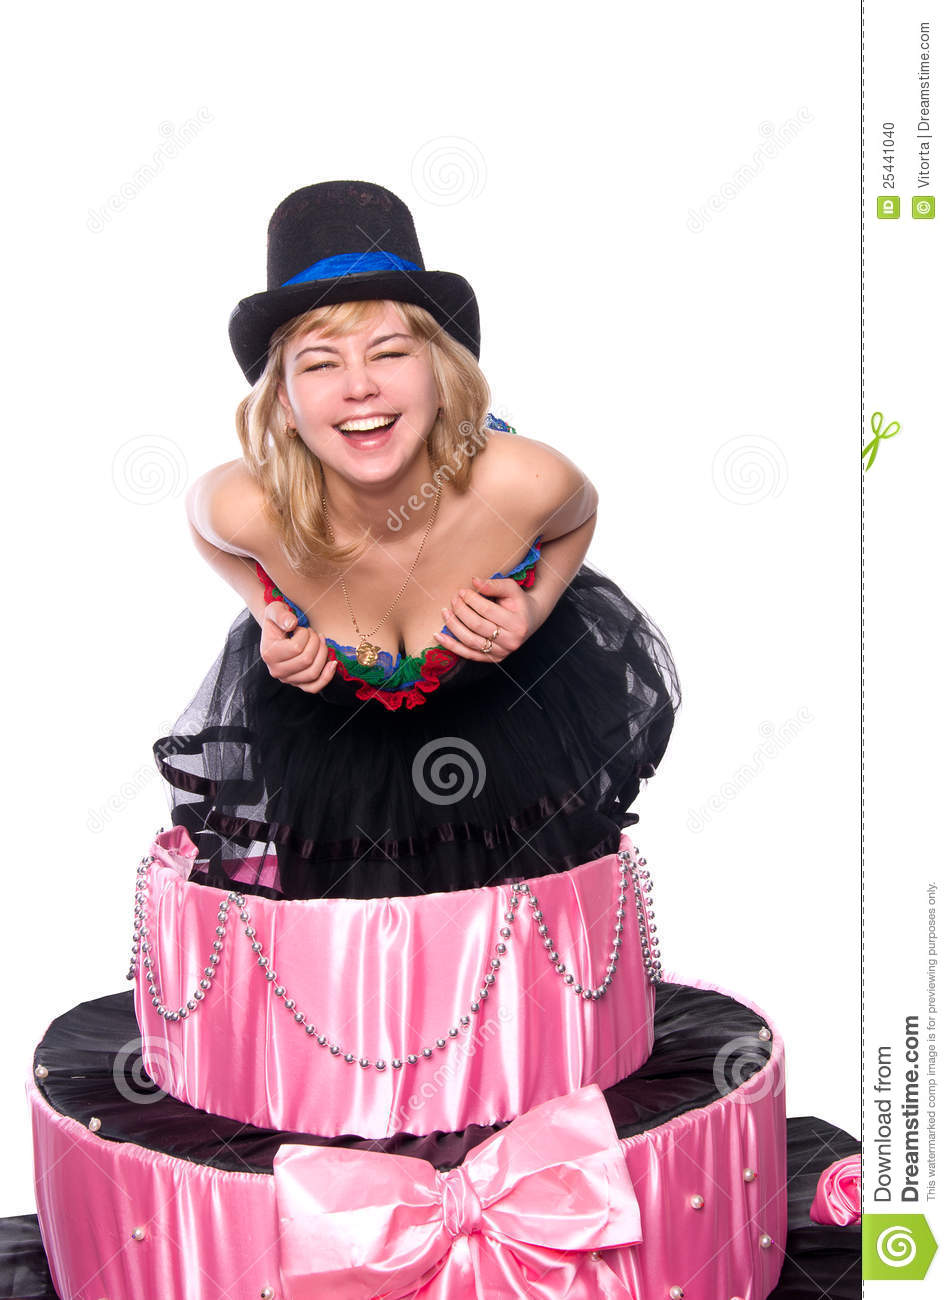 Terrific Girl A Surprise Gift Jumps Out Of The Toy Cake Stock Photo Funny Birthday Cards Online Hetedamsfinfo